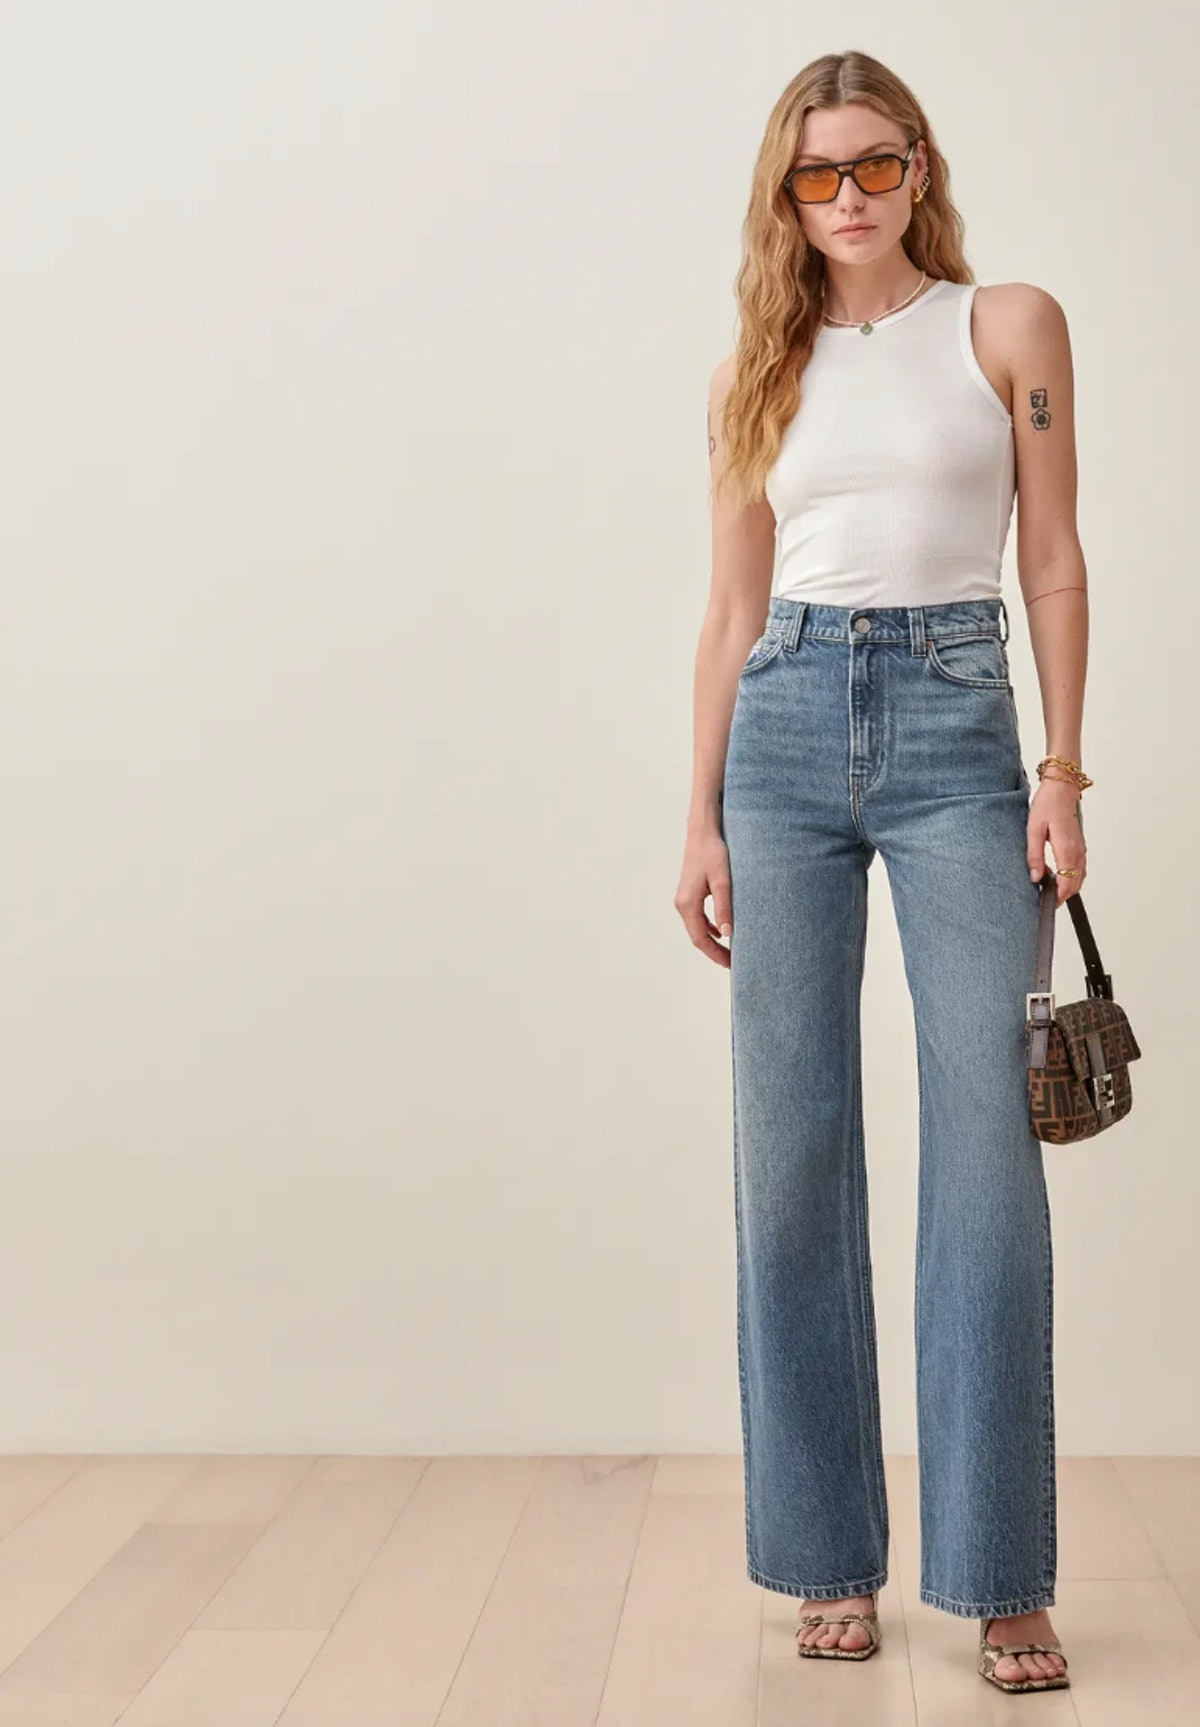 Reformation's Hailey Utility High Rise Wide Leg Jeans in Kama.